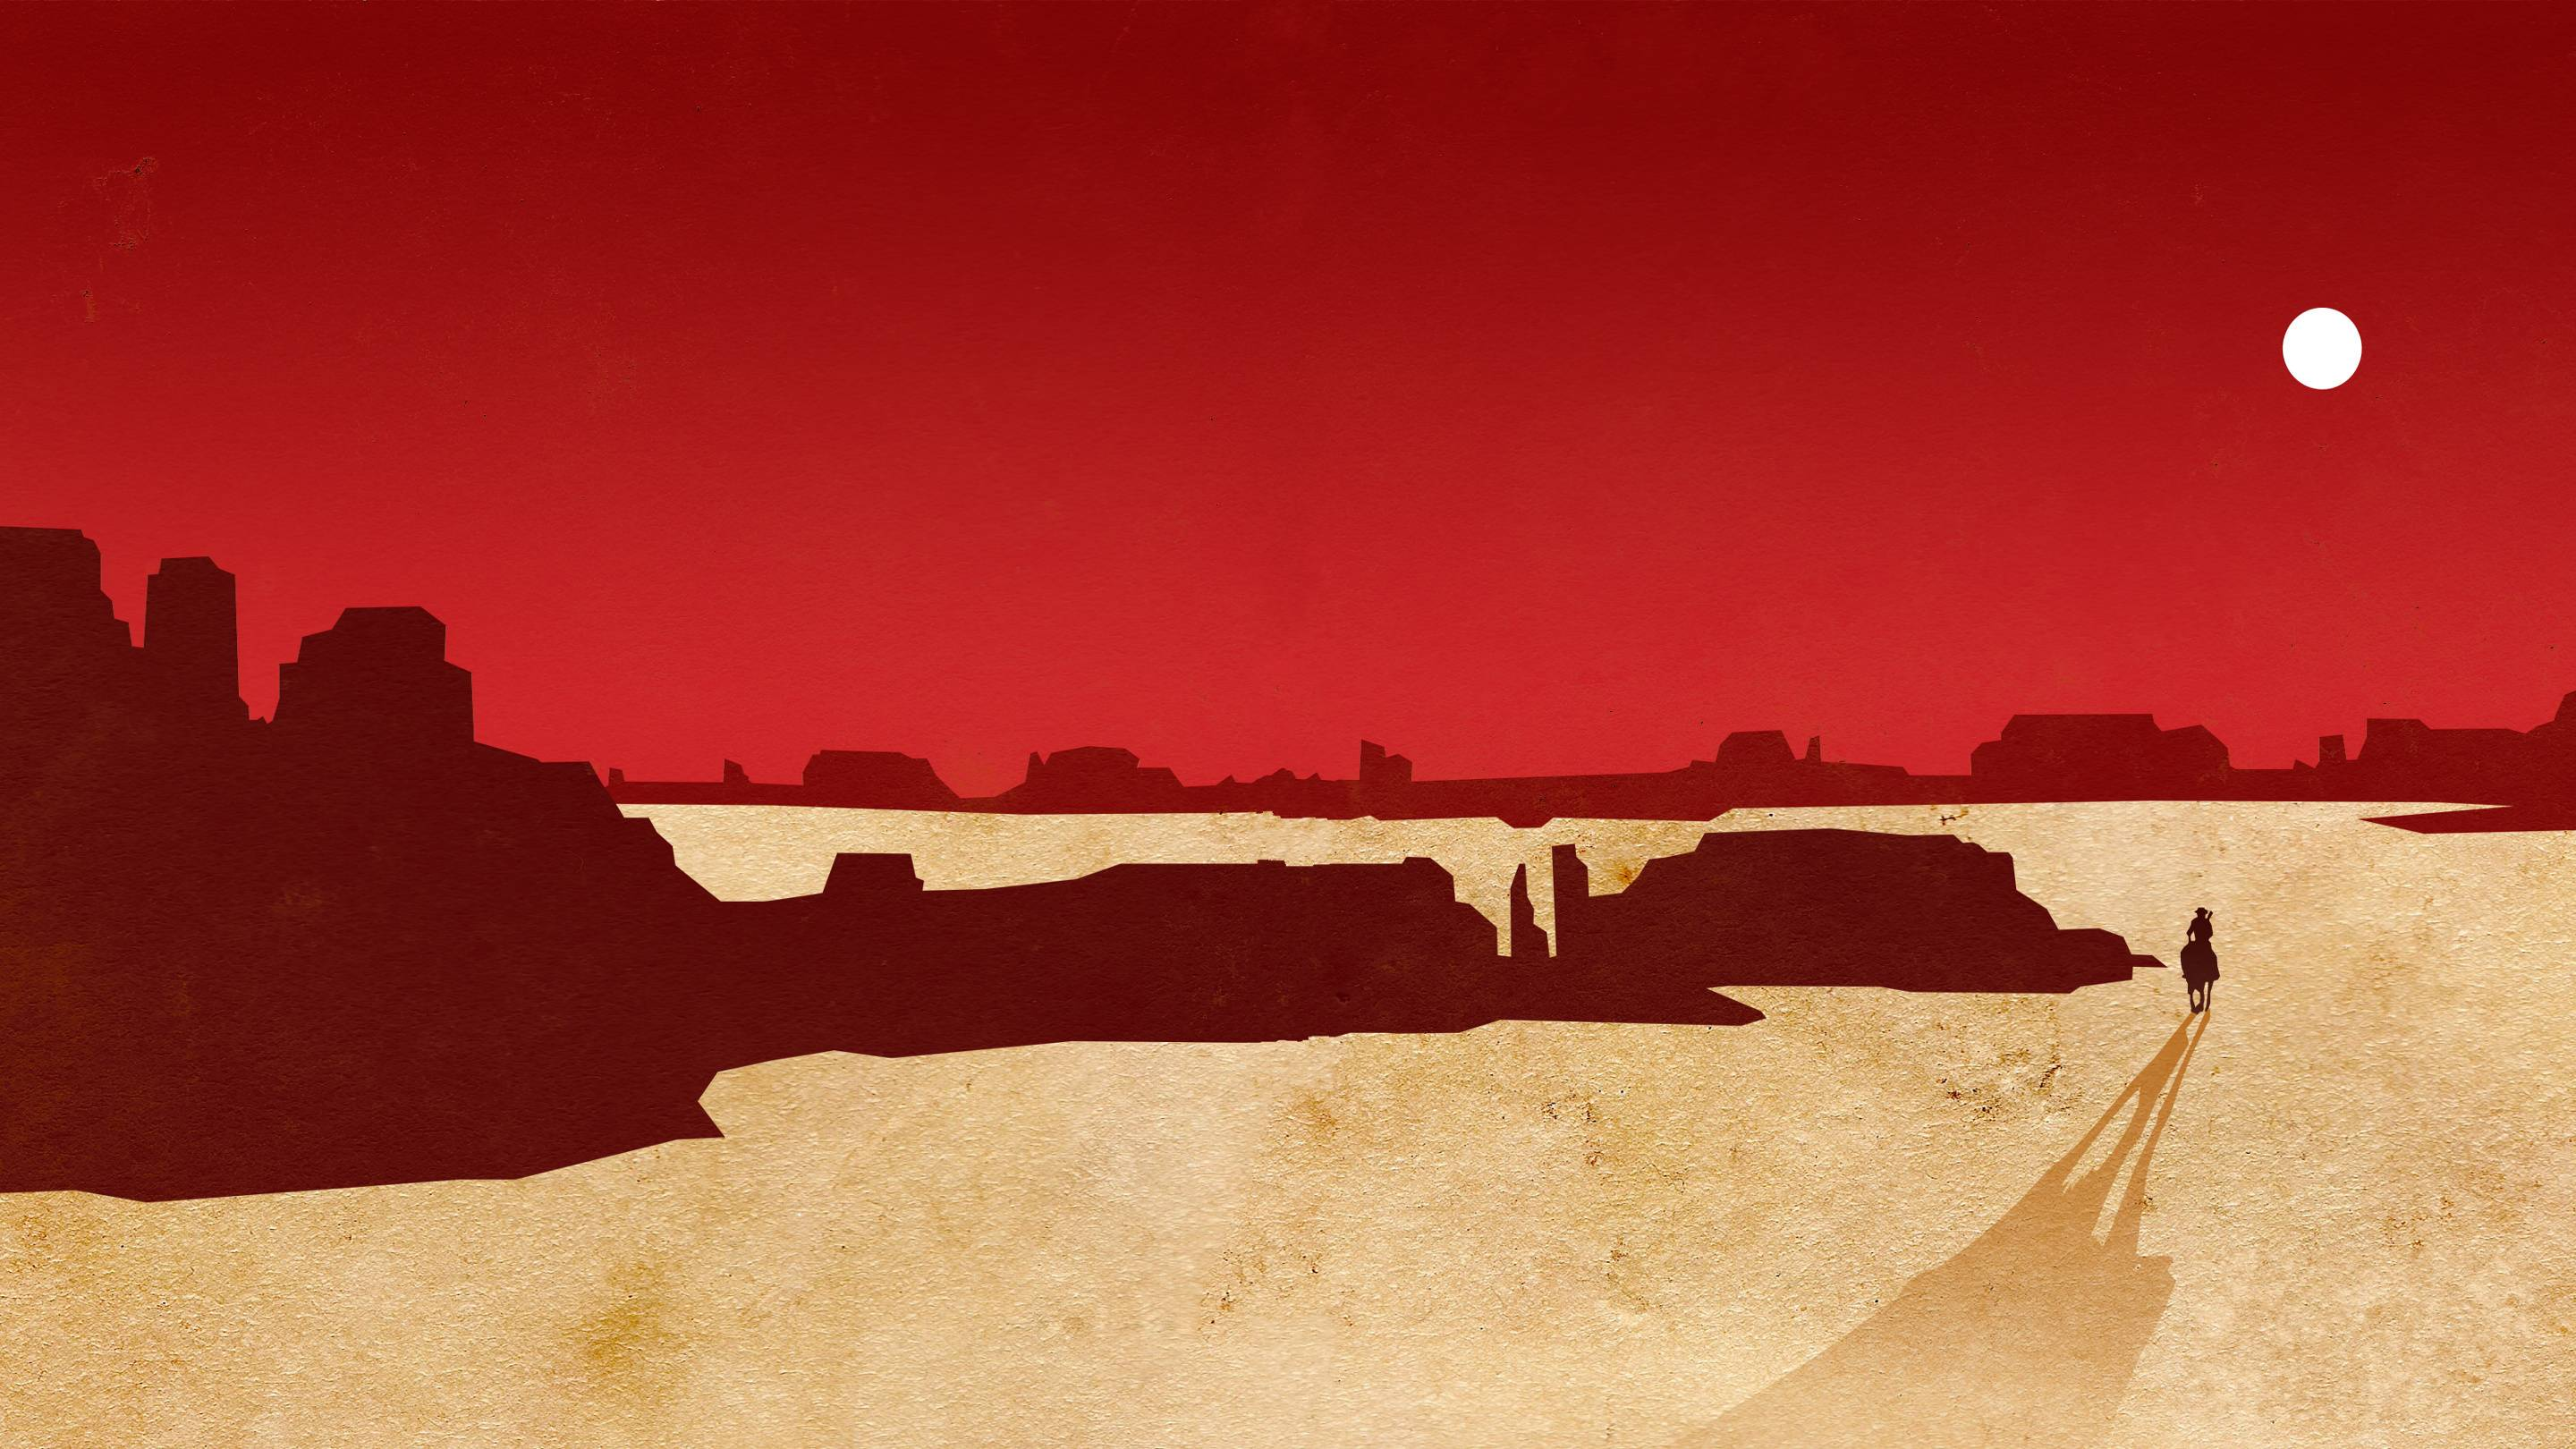 Red dead redemption hd wallpaper background image 2880x1620 id 666406 wallpaper abyss - 2880x1620 wallpaper ...